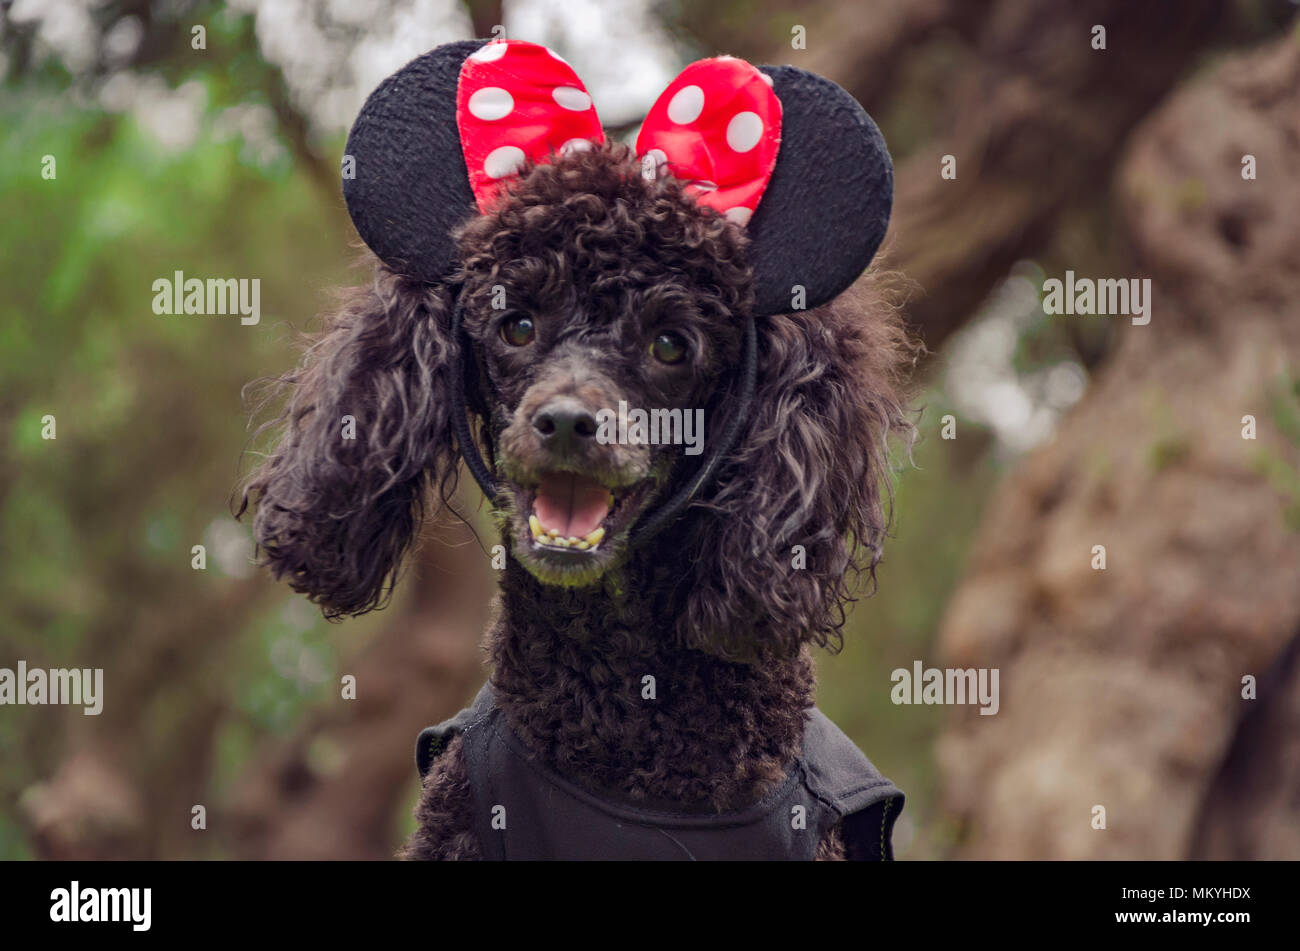 Close-up of Poodle looking at camera, 13 years old - Stock Image